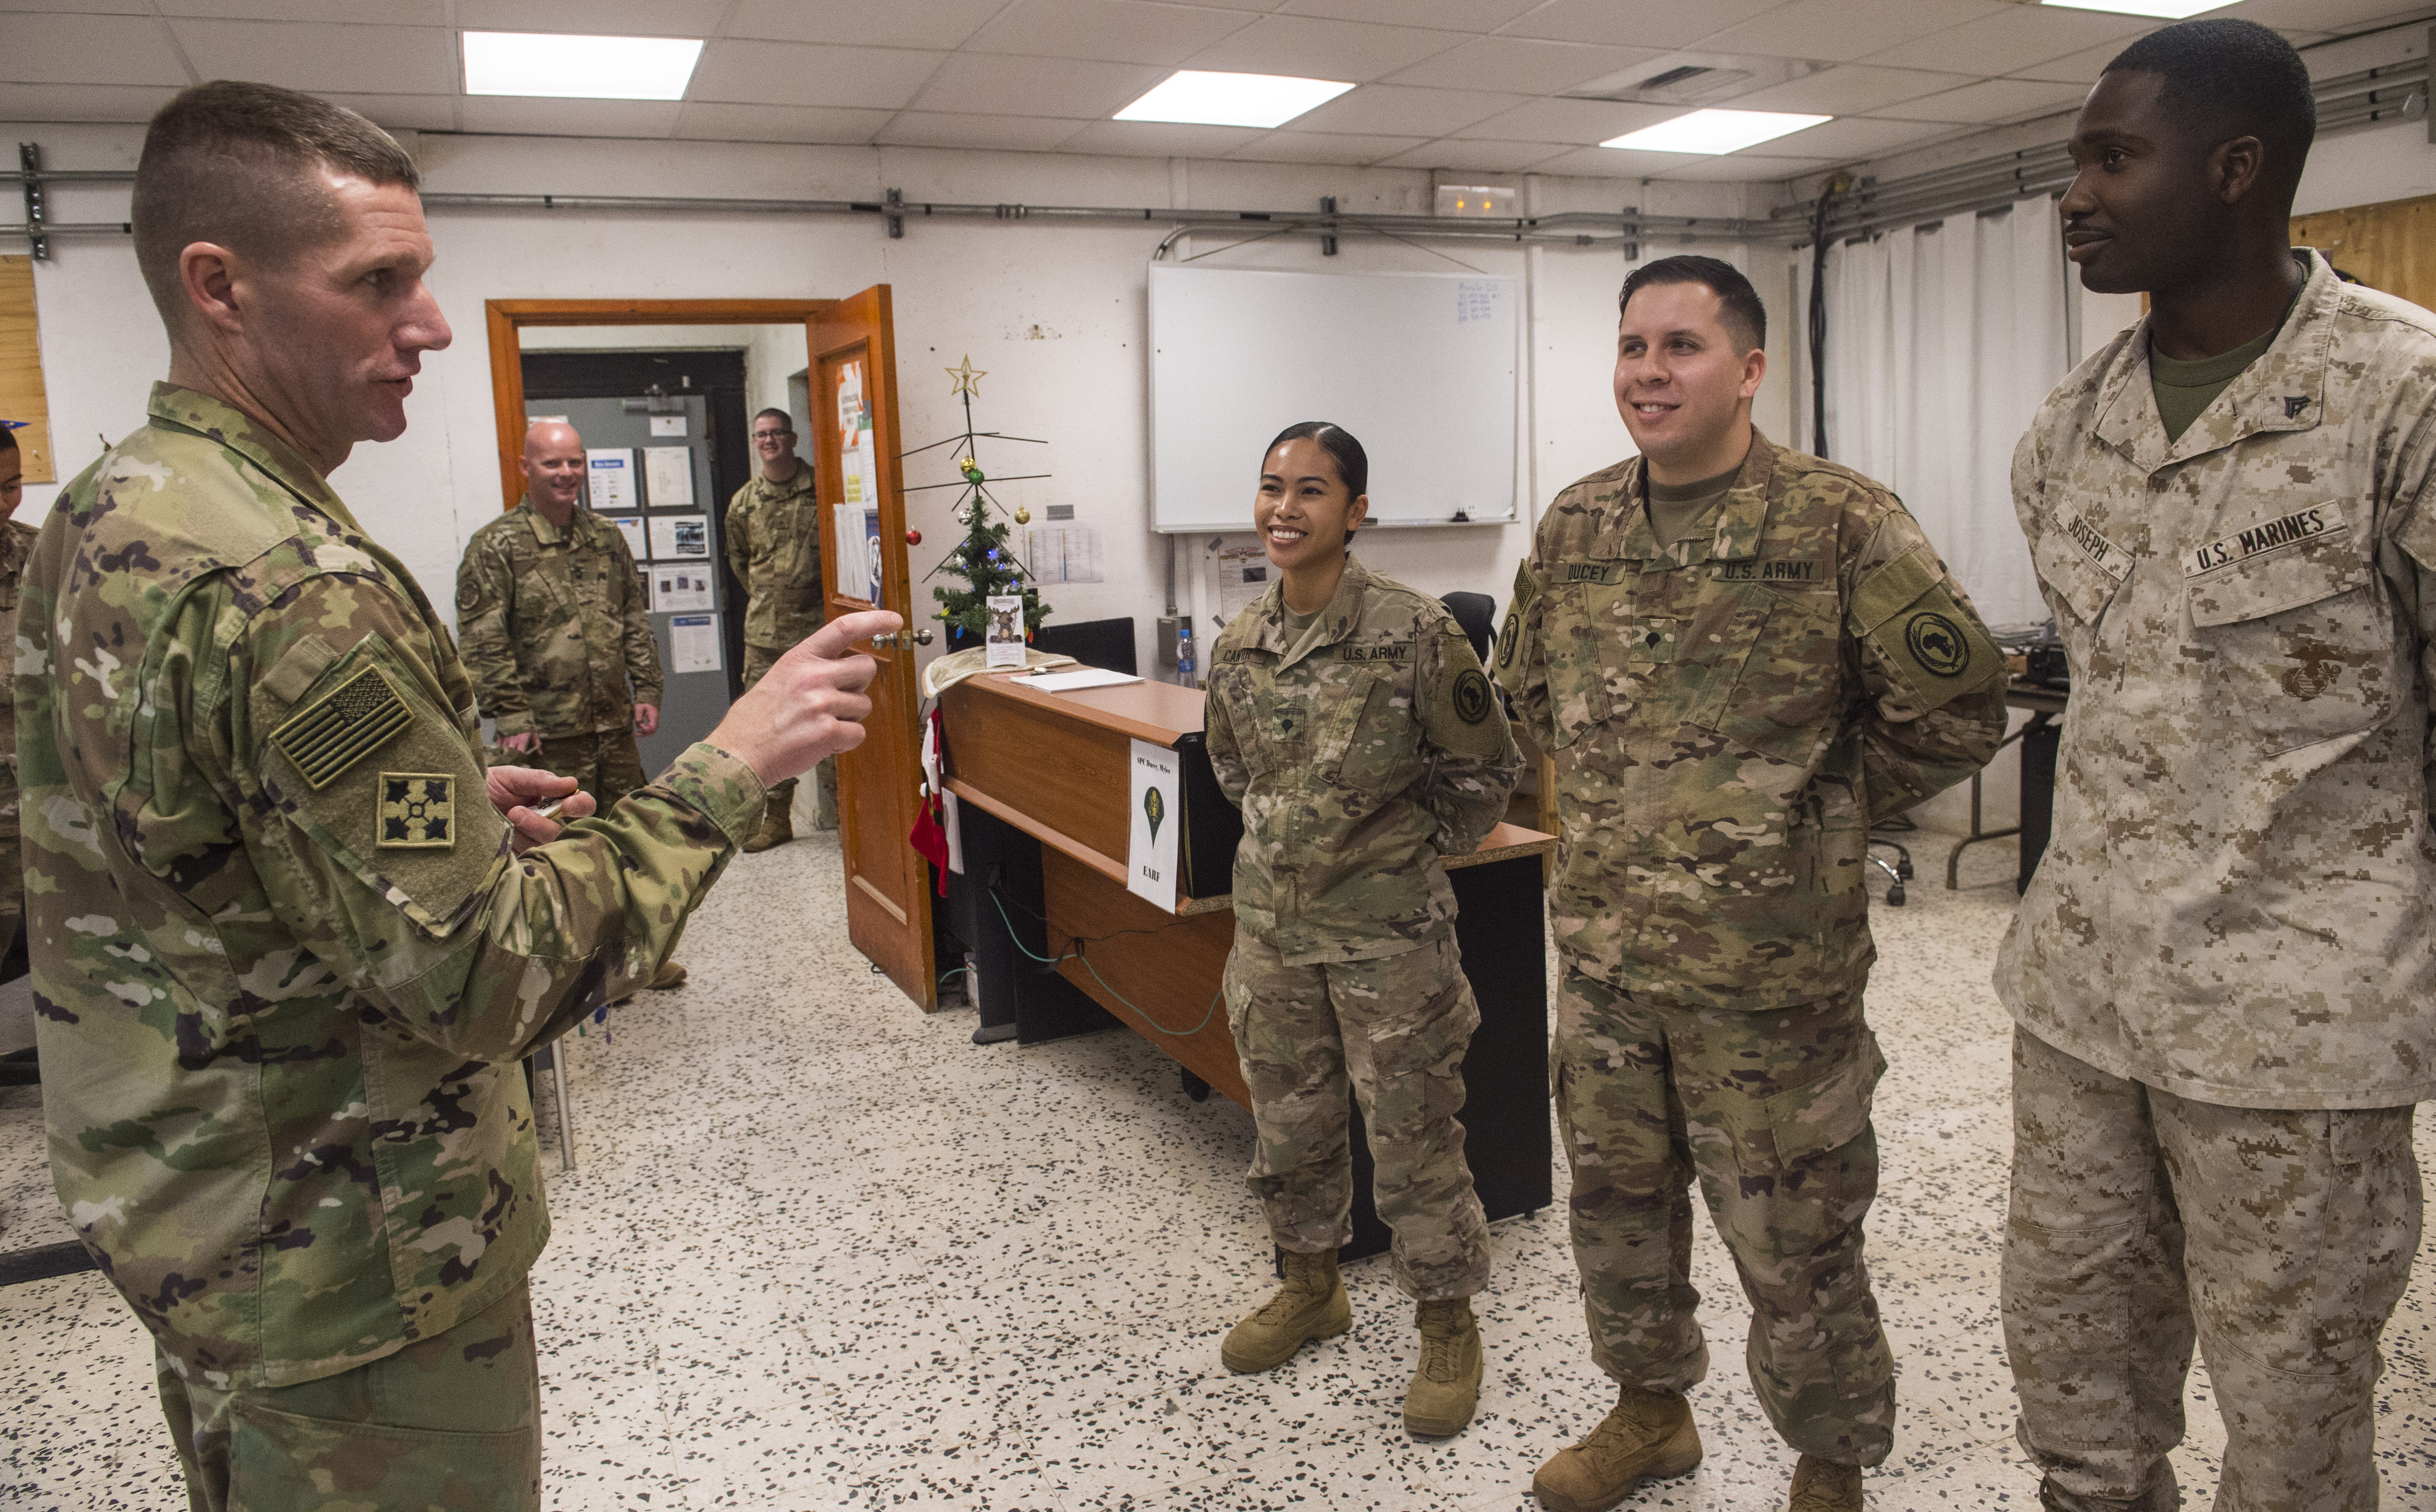 U.S. Sgt. Maj. of the Army Daniel Dailey recognizes top-performing service members assigned to Combined Joint Task Force - Horn of Africa during his visit to Camp Lemonnier, Djibouti, Dec. 21, 2017. Camp Lemonnier was Dailey's last stop before returning to the United States as he visited with Soldiers and other service members deployed and away from their families during the holidays. (U.S. Air Force photo by Staff Sgt. Timothy Moore)